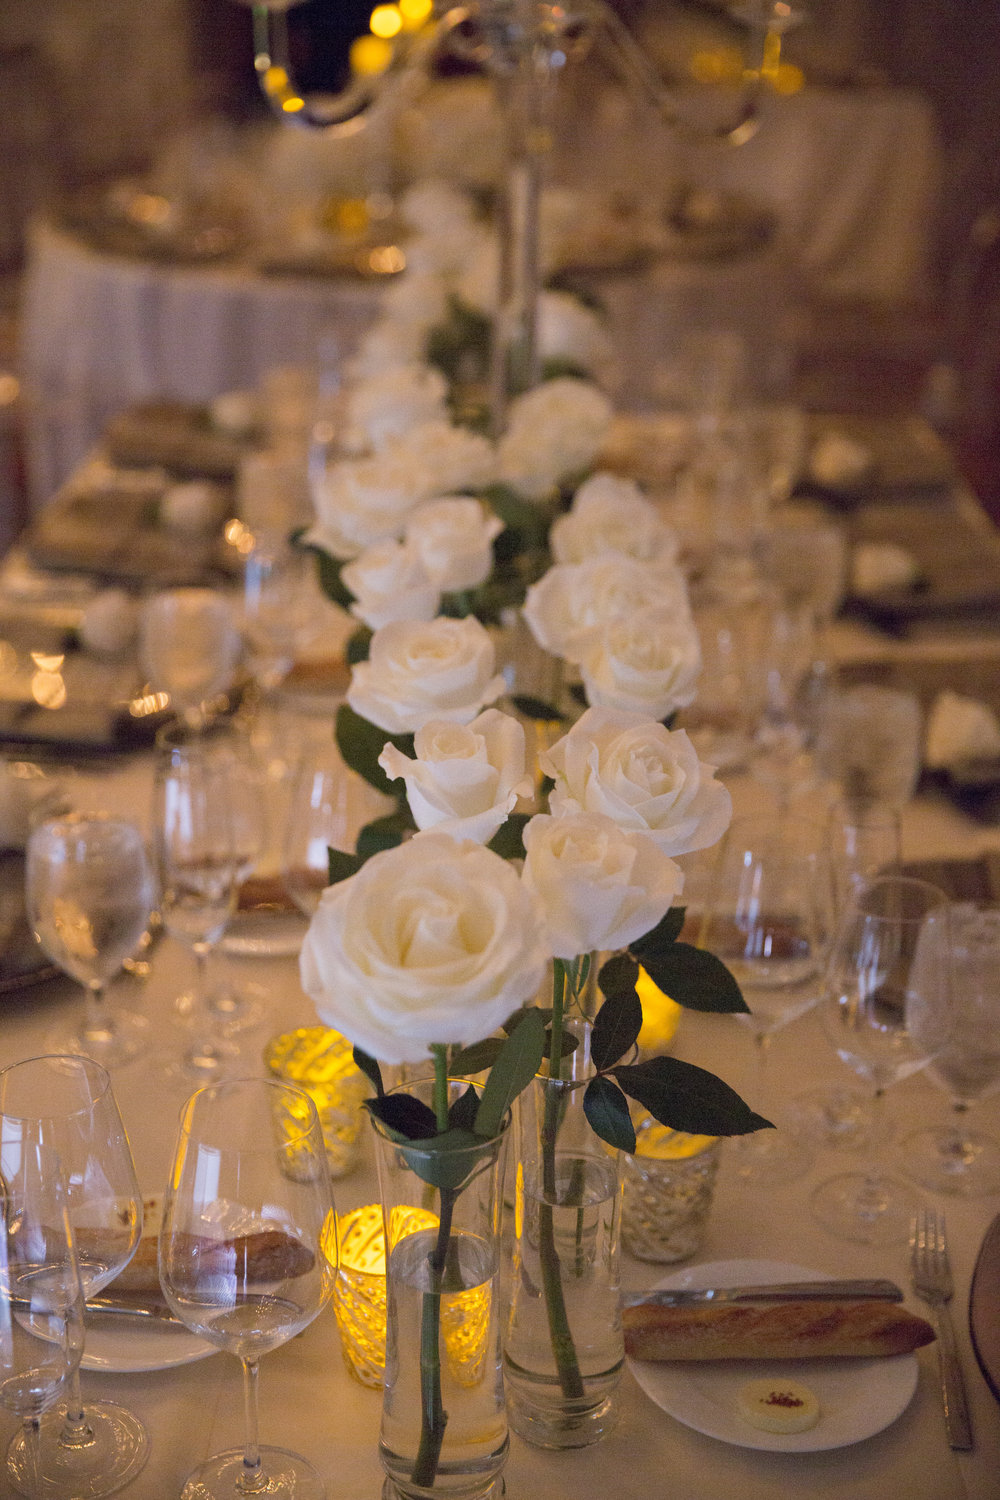 Bold white roses in straight line on long wedding table.  WEDDING PLANNING & EVENT DESIGN •  Andrea Eppolito Events , PHOTOGRAPHY •  AltF Photography ,  FLORAL AND DECOR DESIGN & PRODUCTION • Destinations by Design , CATERING •  Mandarin Oriental Las Vegas , COCKTAILS •  The Grand Bevy , WEDDING GOWN •  Galia Lahav ,  SHOES •  Jimmy Choo , ACRYLIC MENUS & SEATING CHART•  She Paperie